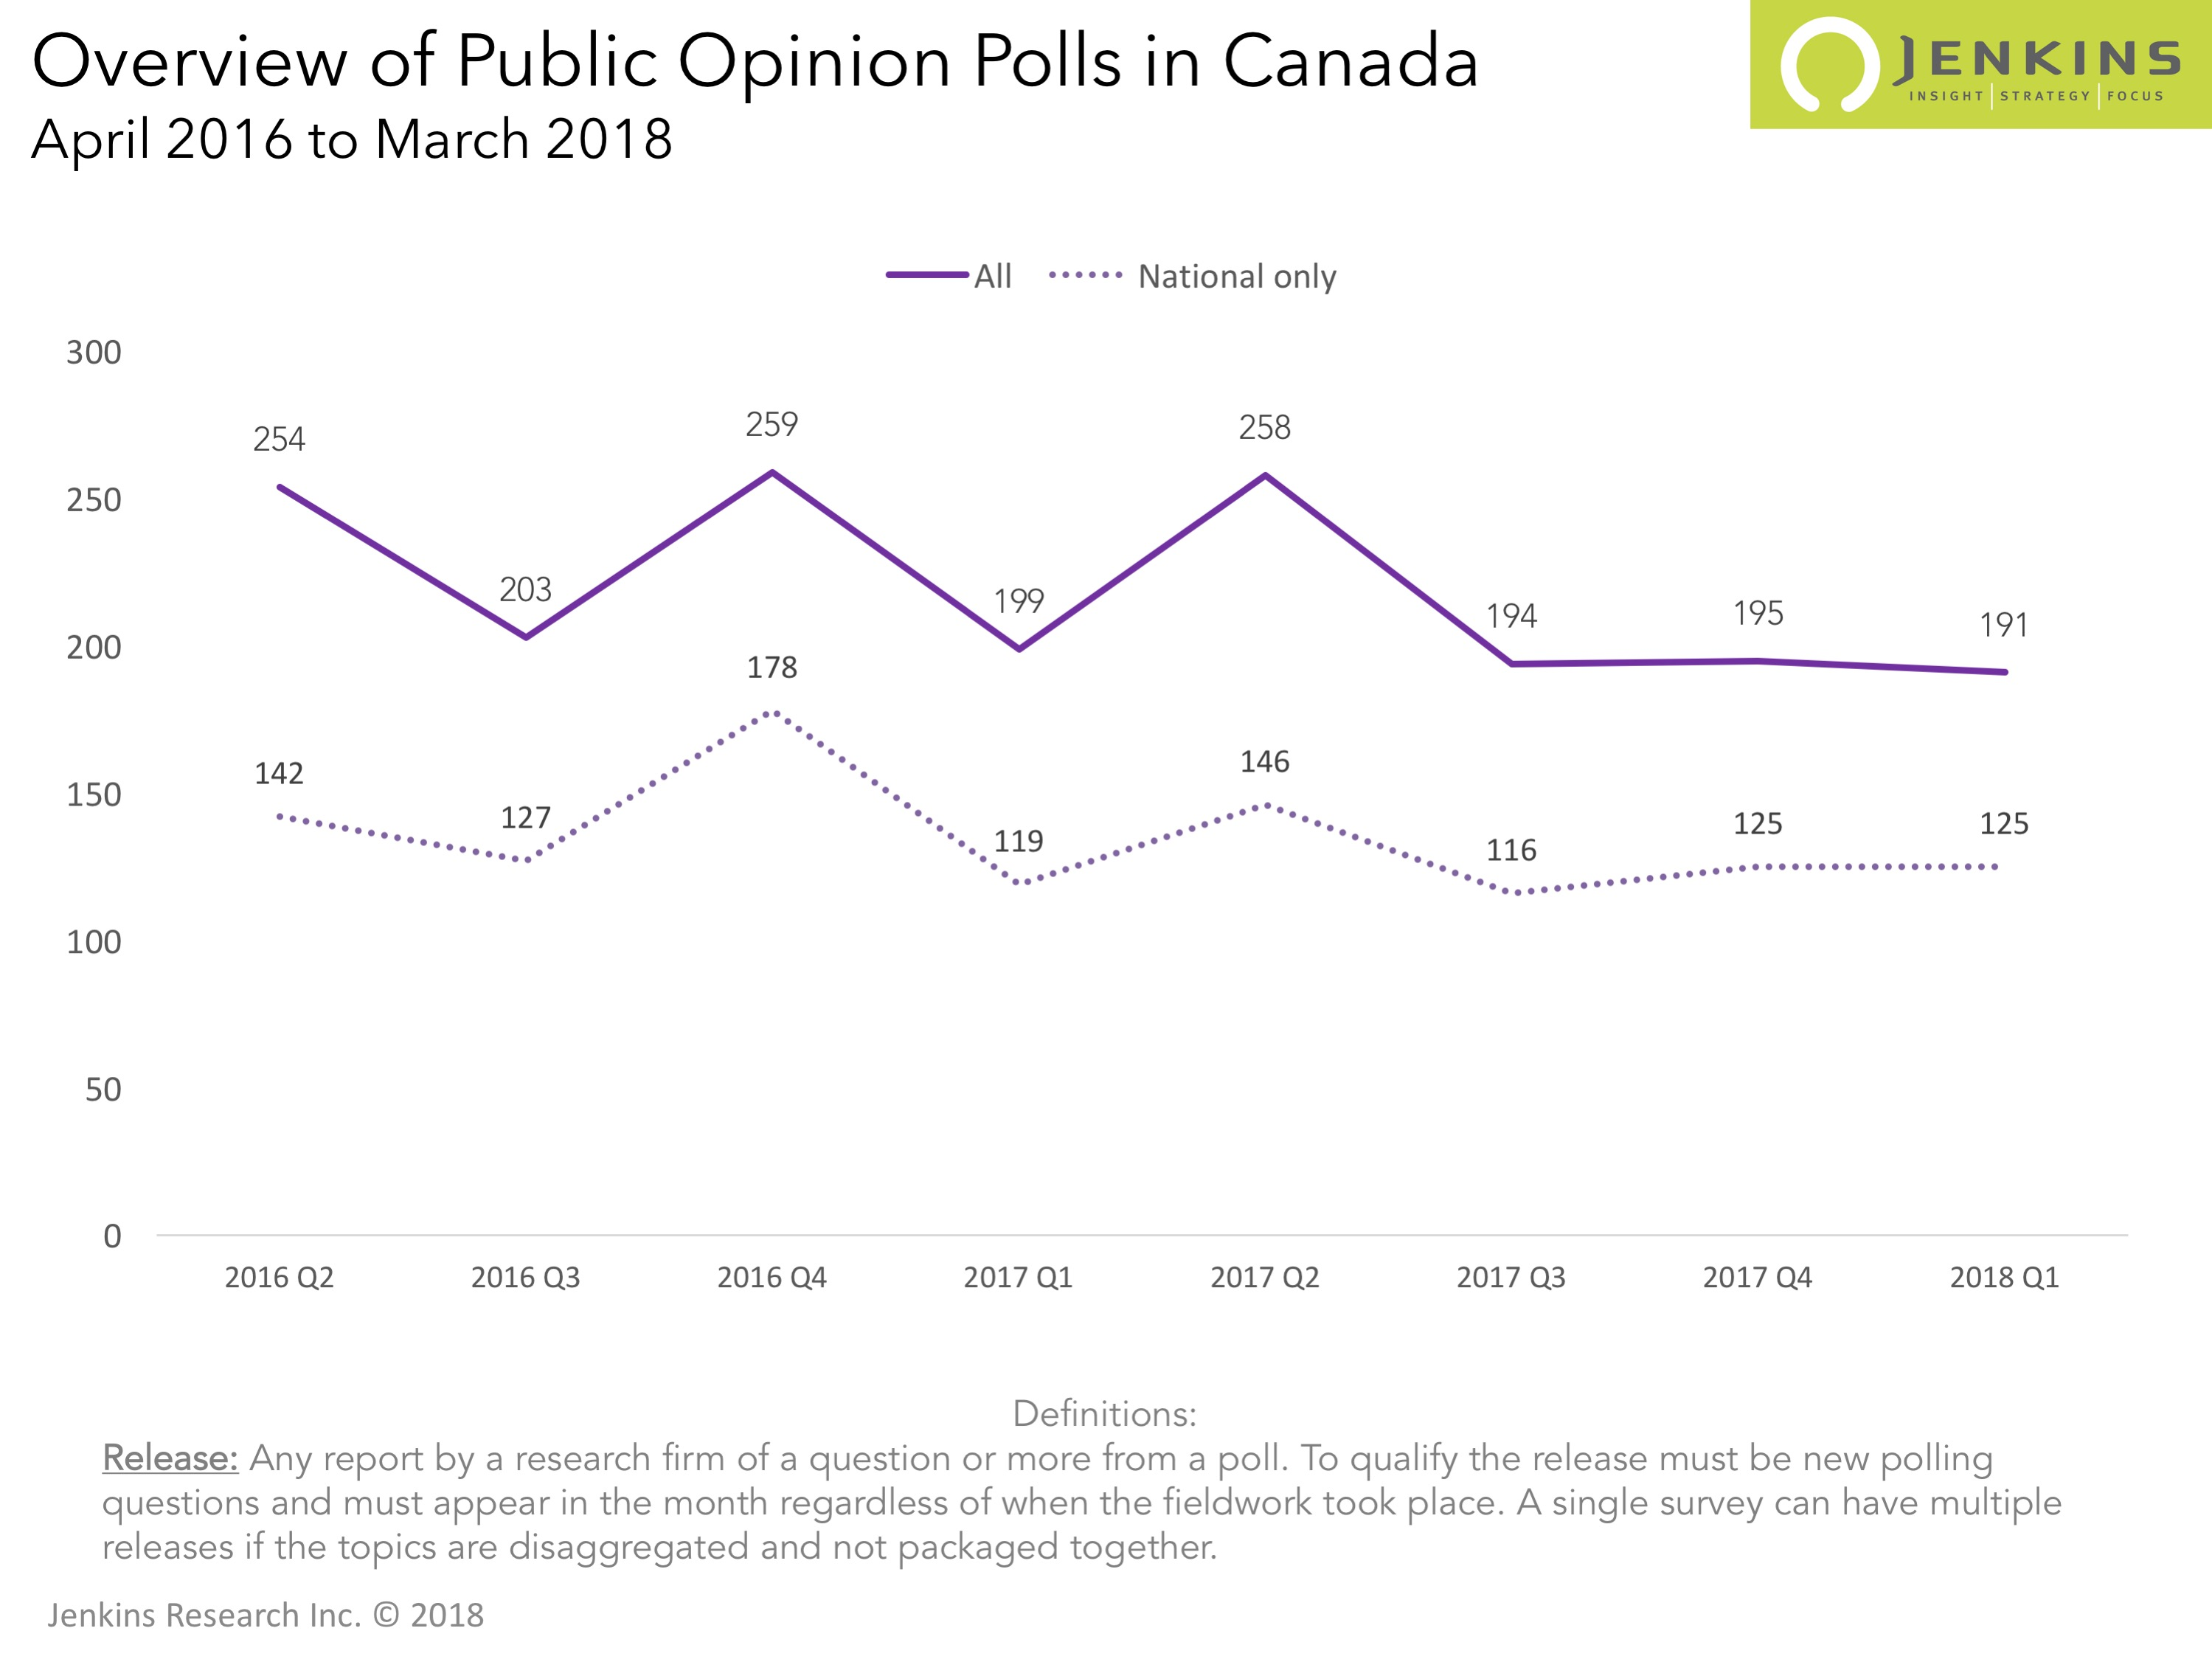 More and more polling about non-policy issues | 2018 Q1 Publicly Released Polls